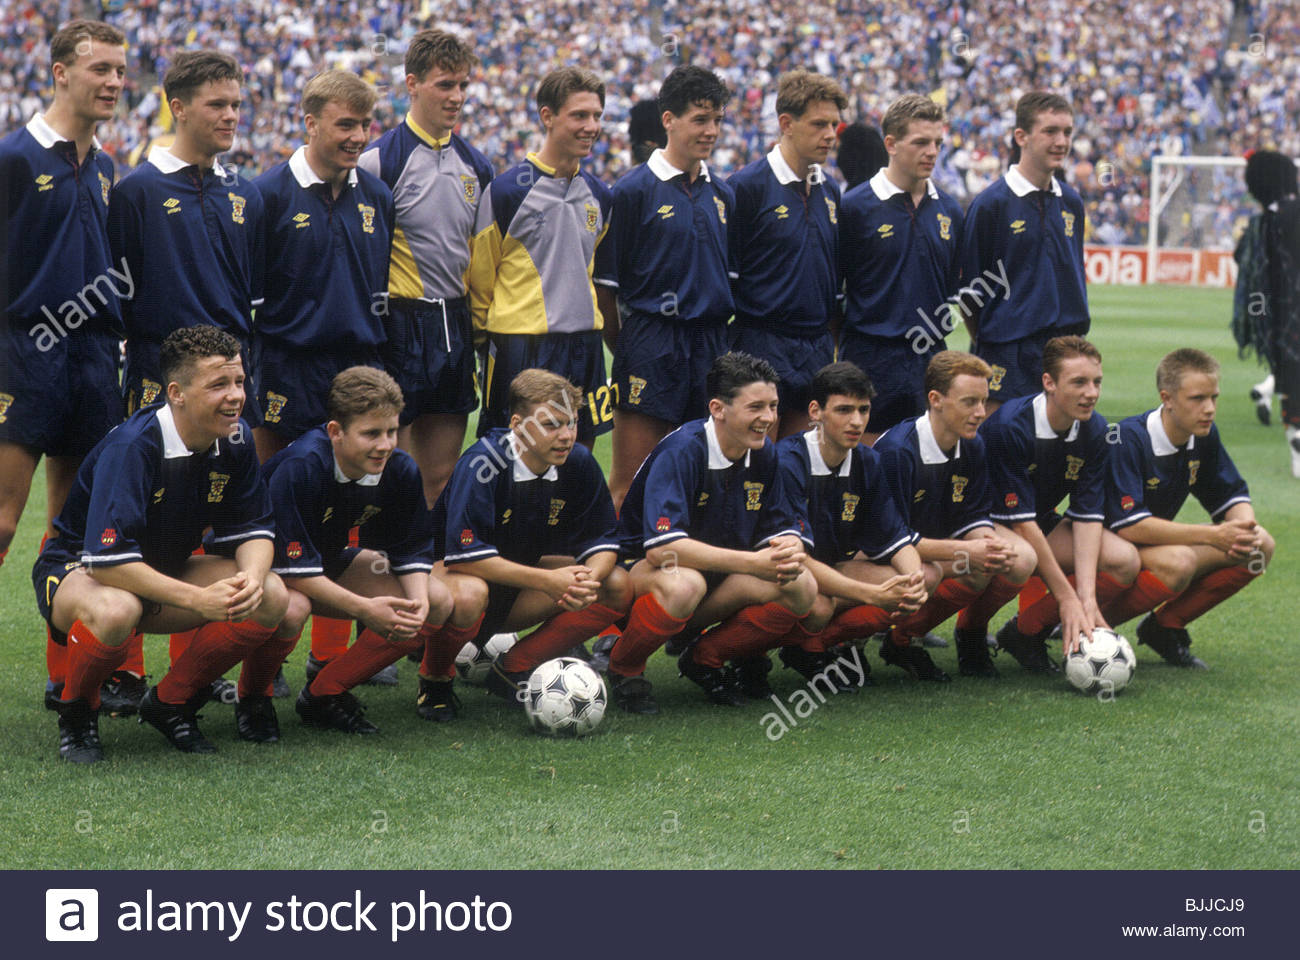 24/06/89 UNDER 16 JVC WORLD CUP FINAL SAUDI ARABIA U16 V ...